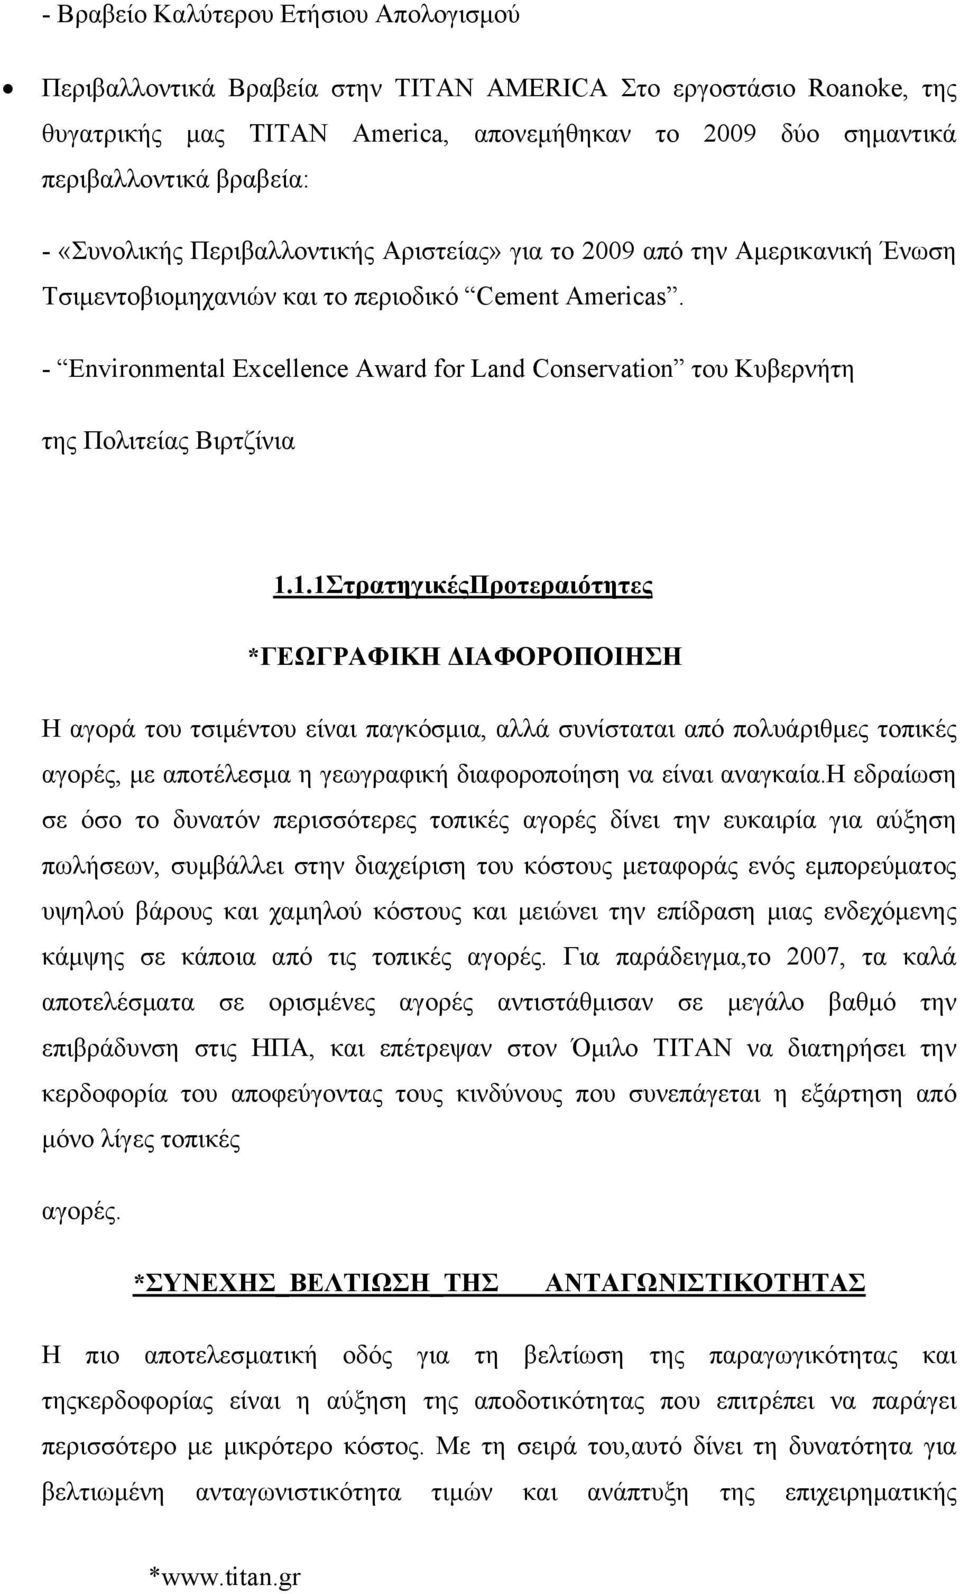 - Environmental Excellence Award for Land Conservation του Κυβερνήτη της Πολιτείας Βιρτζίνια 1.